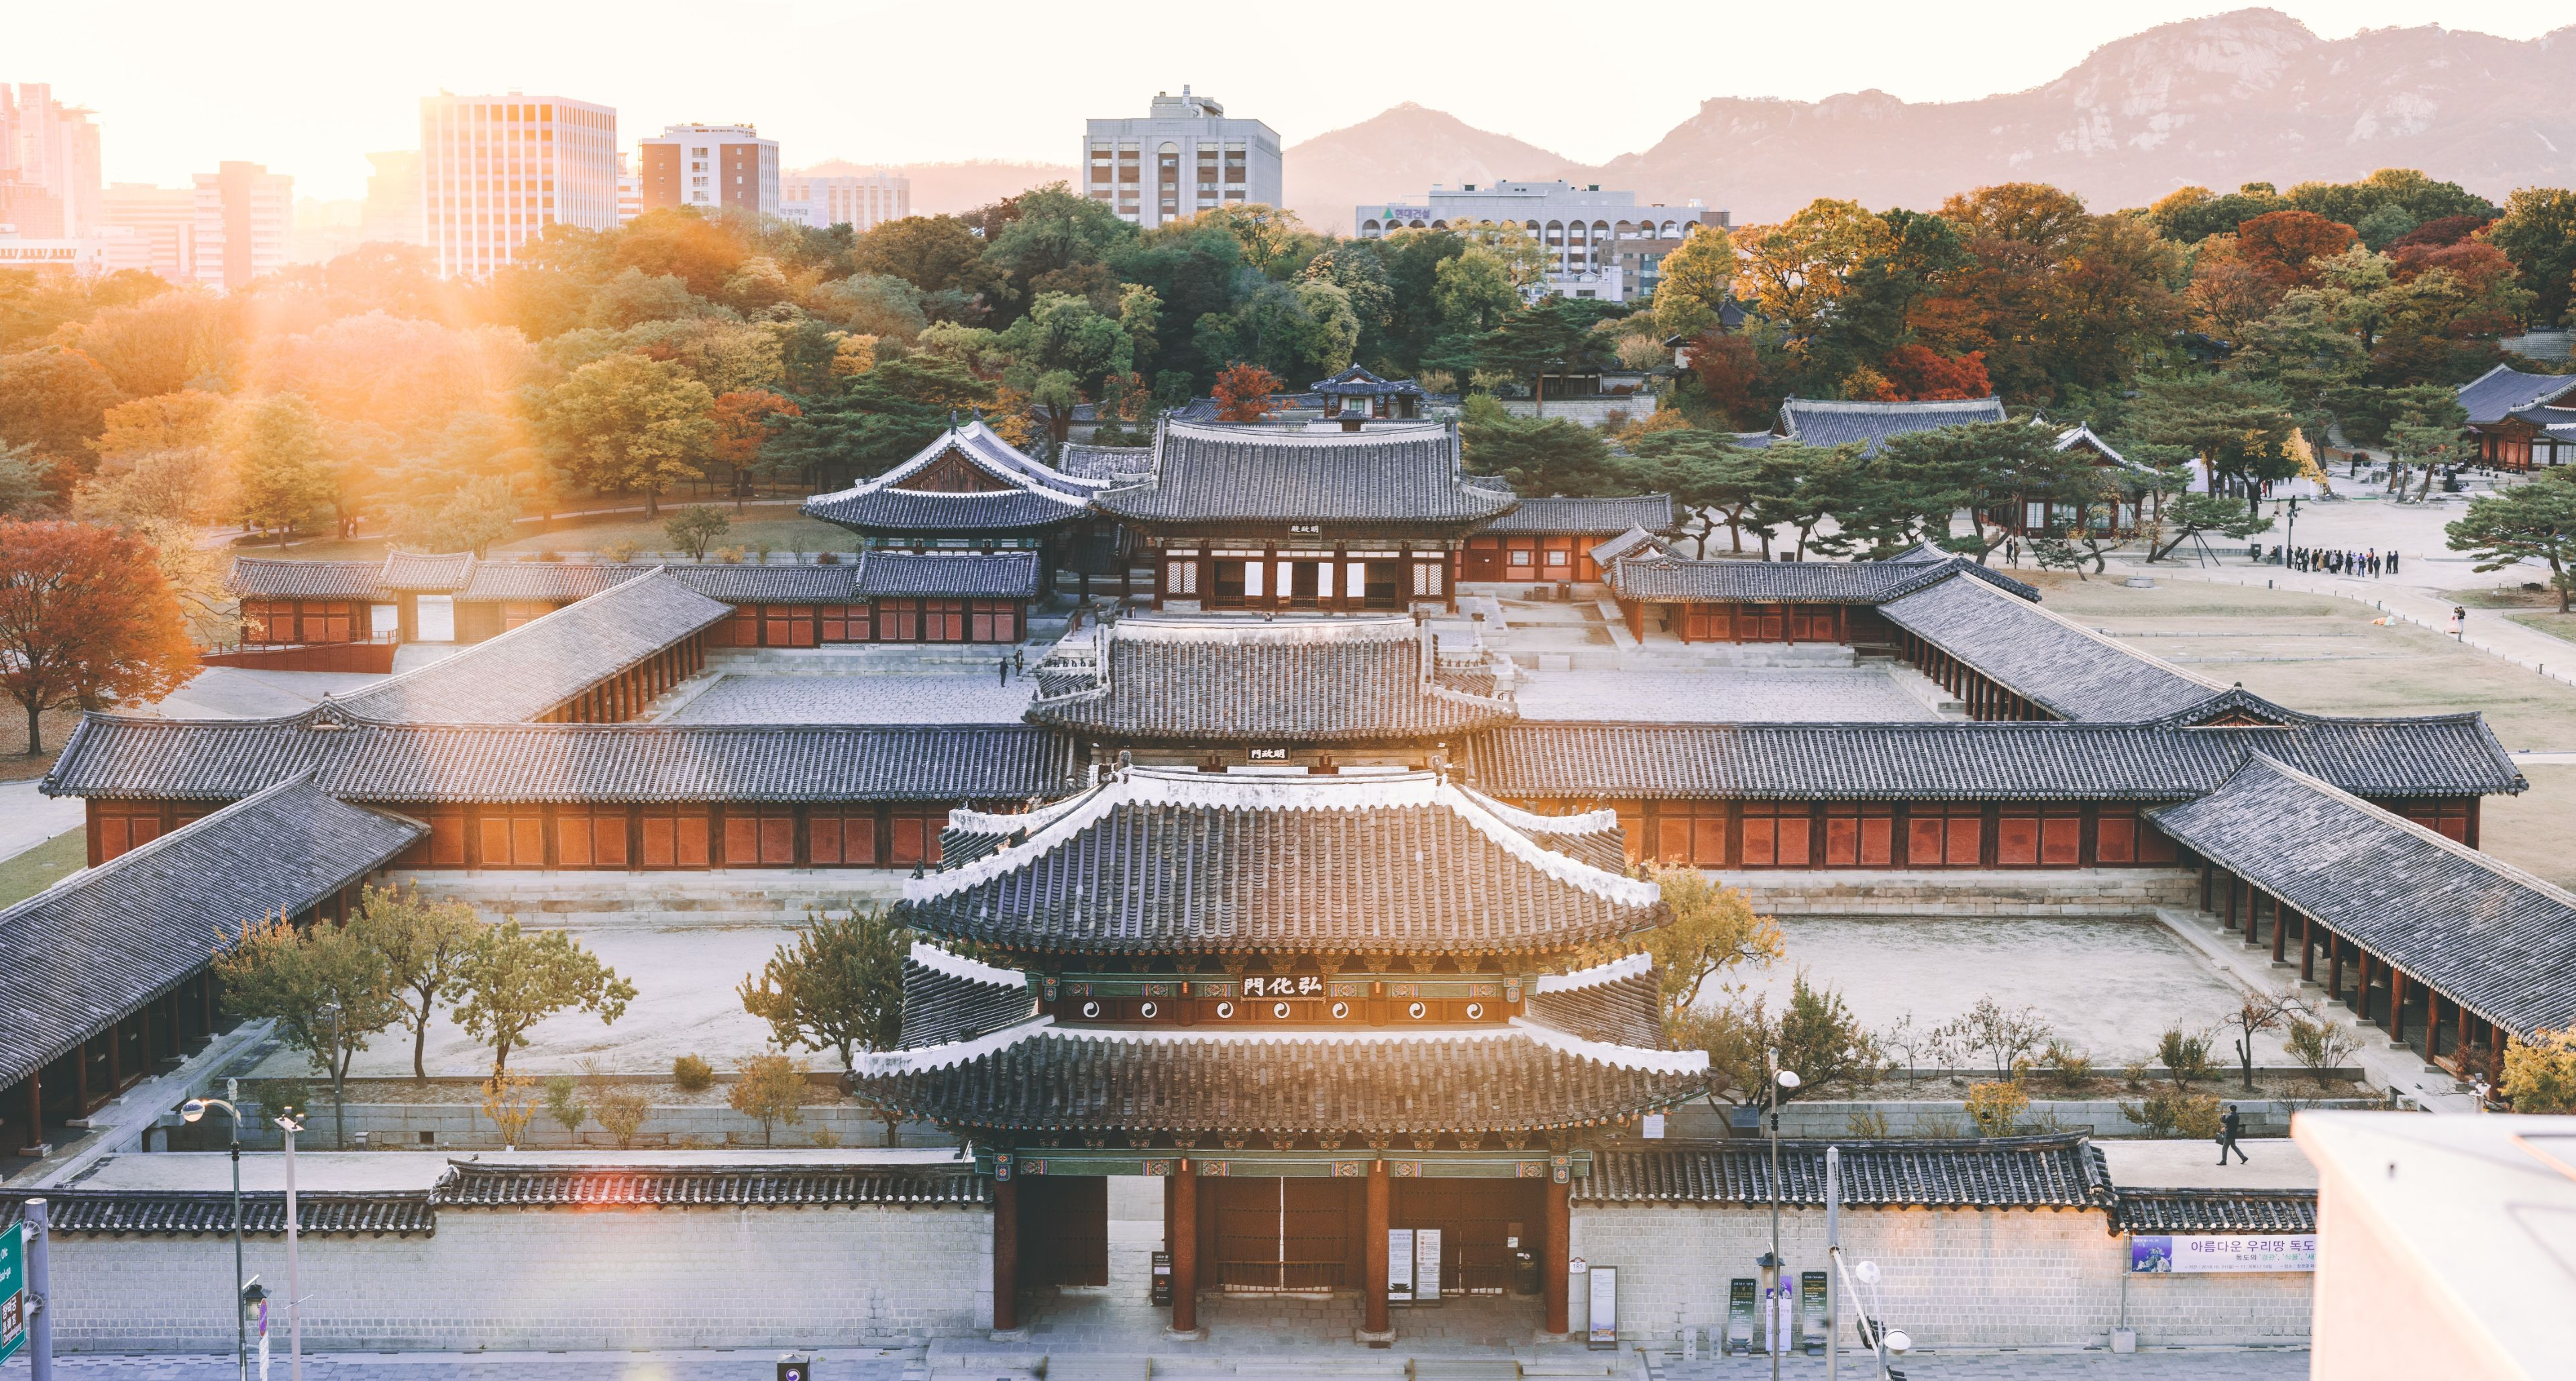 A palace in South Korea